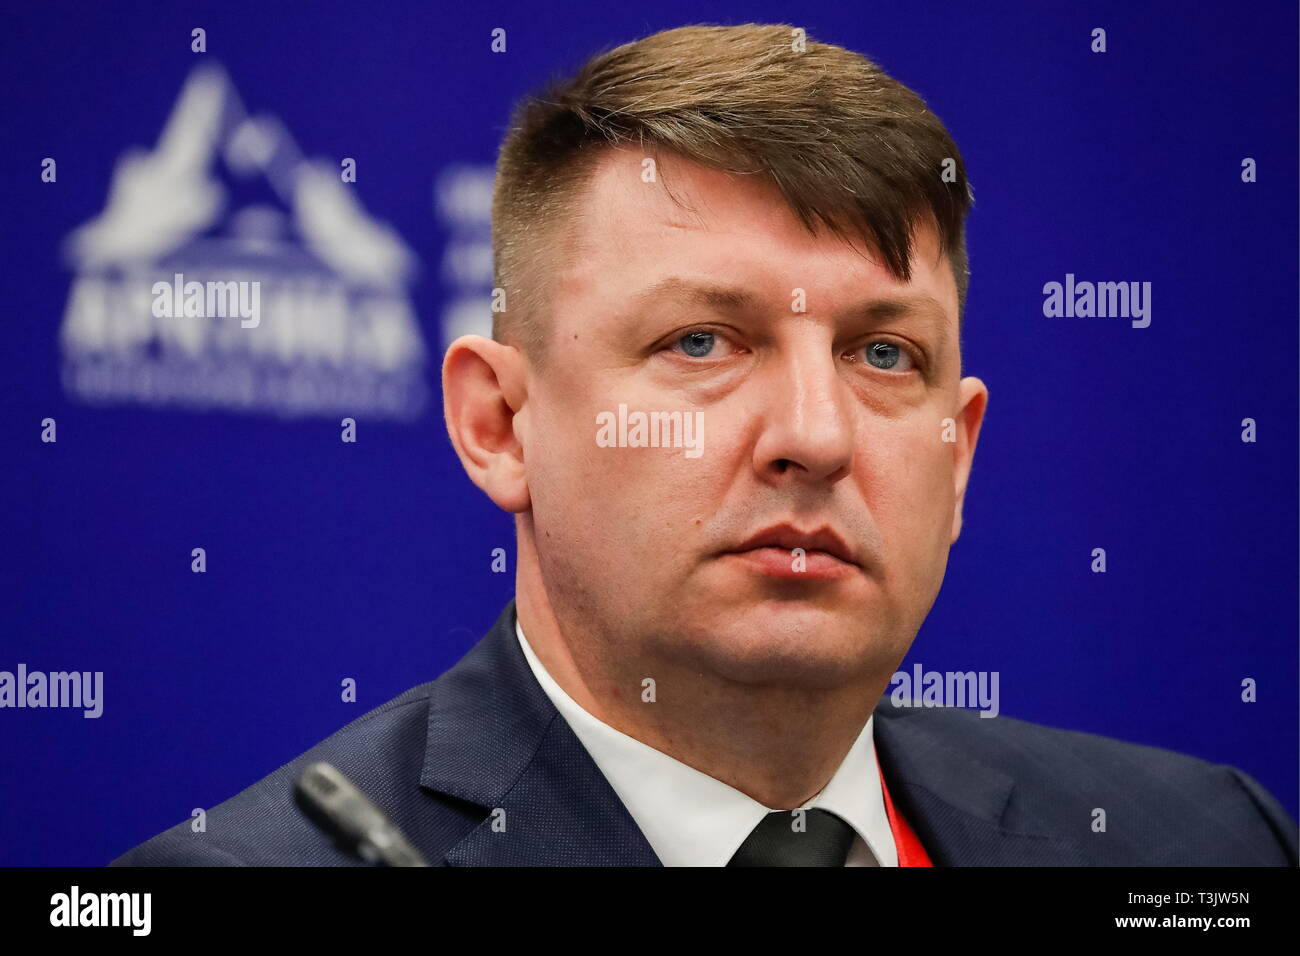 St Petersburg, Russia. 10th Apr, 2019. ST PETERSBURG, RUSSIA - APRIL 10, 2019: Andrei Basov, head of the Federal Centre for Regulation, Standardisation and Technical Conformity Assessment in Construction, attends the 2019 International Arctic Forum at ExpoForum Convention and Exhibition Centre. Sergei Karpukhin/TASS Host Photo Agency Credit: ITAR-TASS News Agency/Alamy Live News - Stock Image